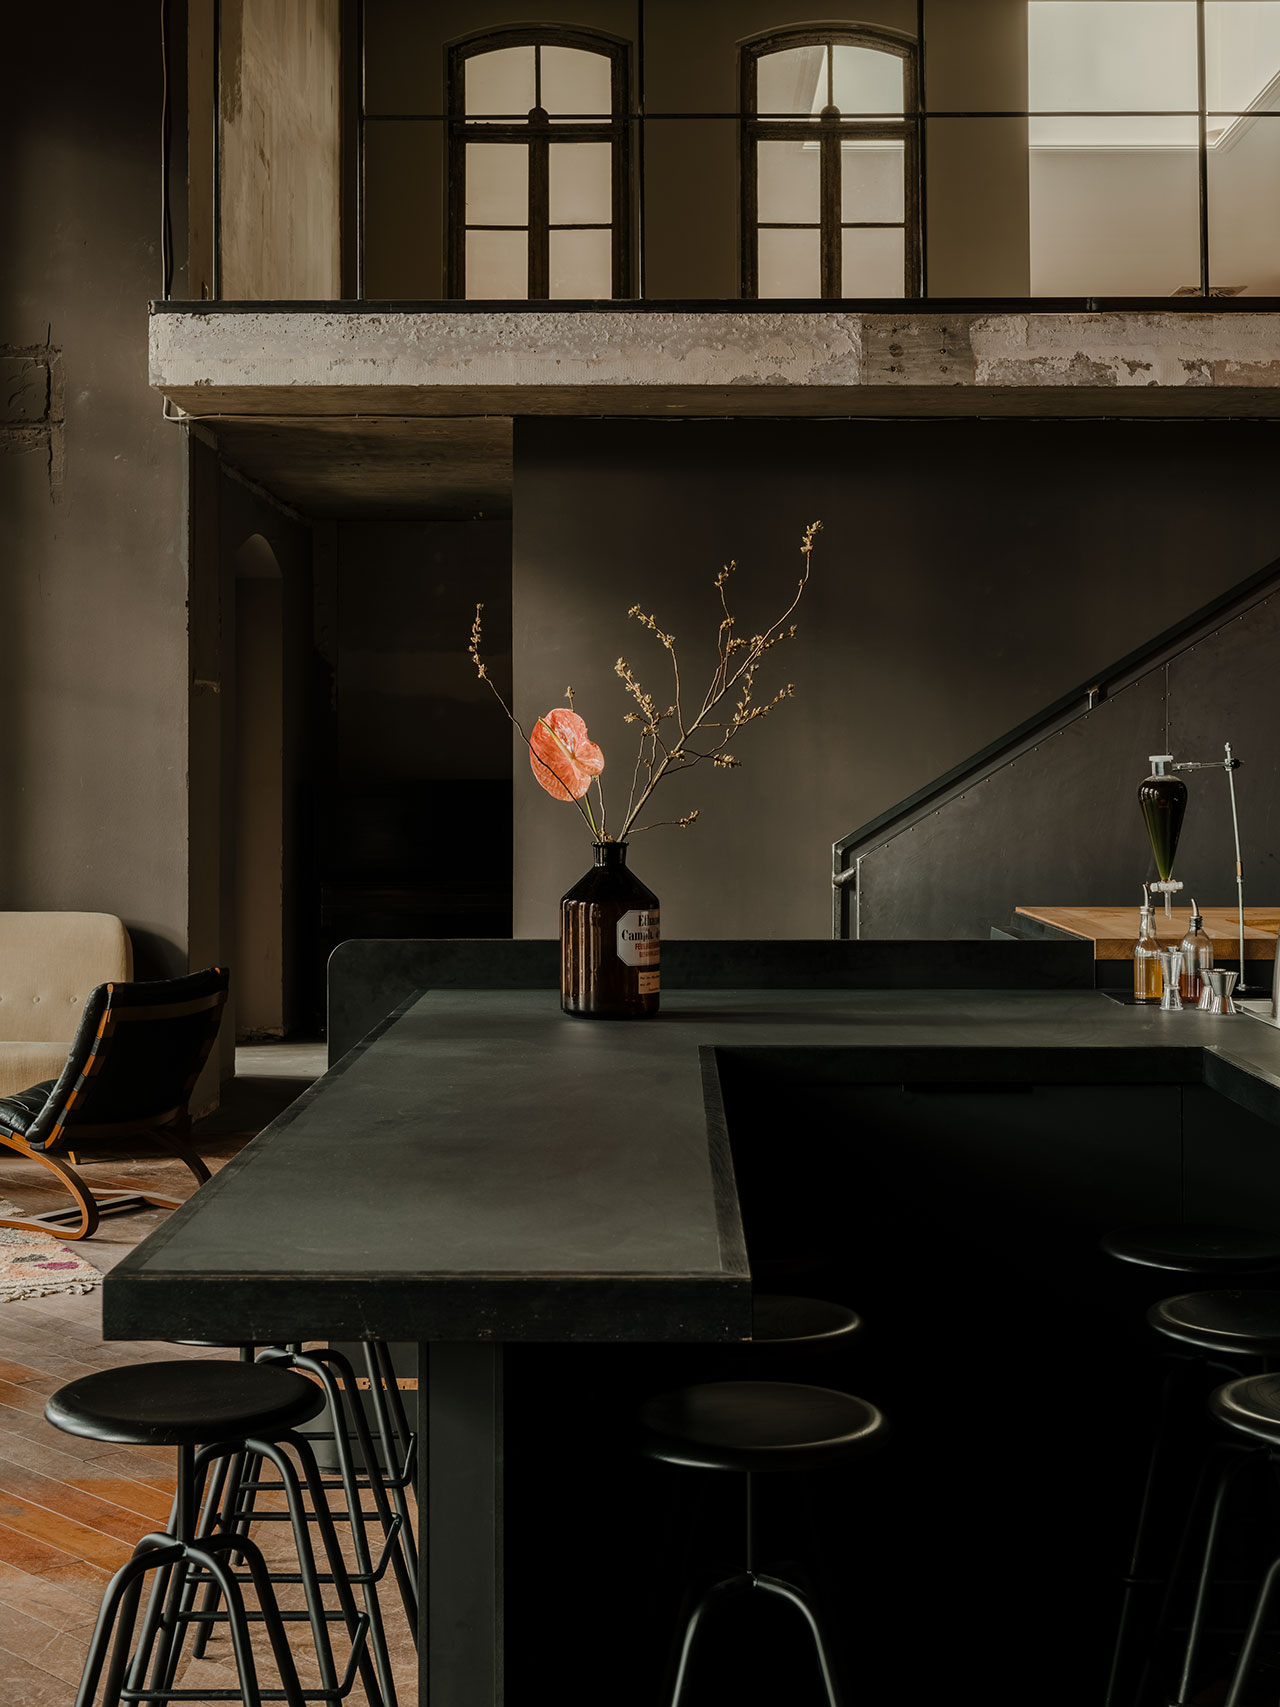 KINK Bar & Restaurant. Bar design in collaboration with Hidden Fortress.Bar stools by Atelier Haussmann. Photography by Robert Rieger. Courtesy of Kerim Seiler.